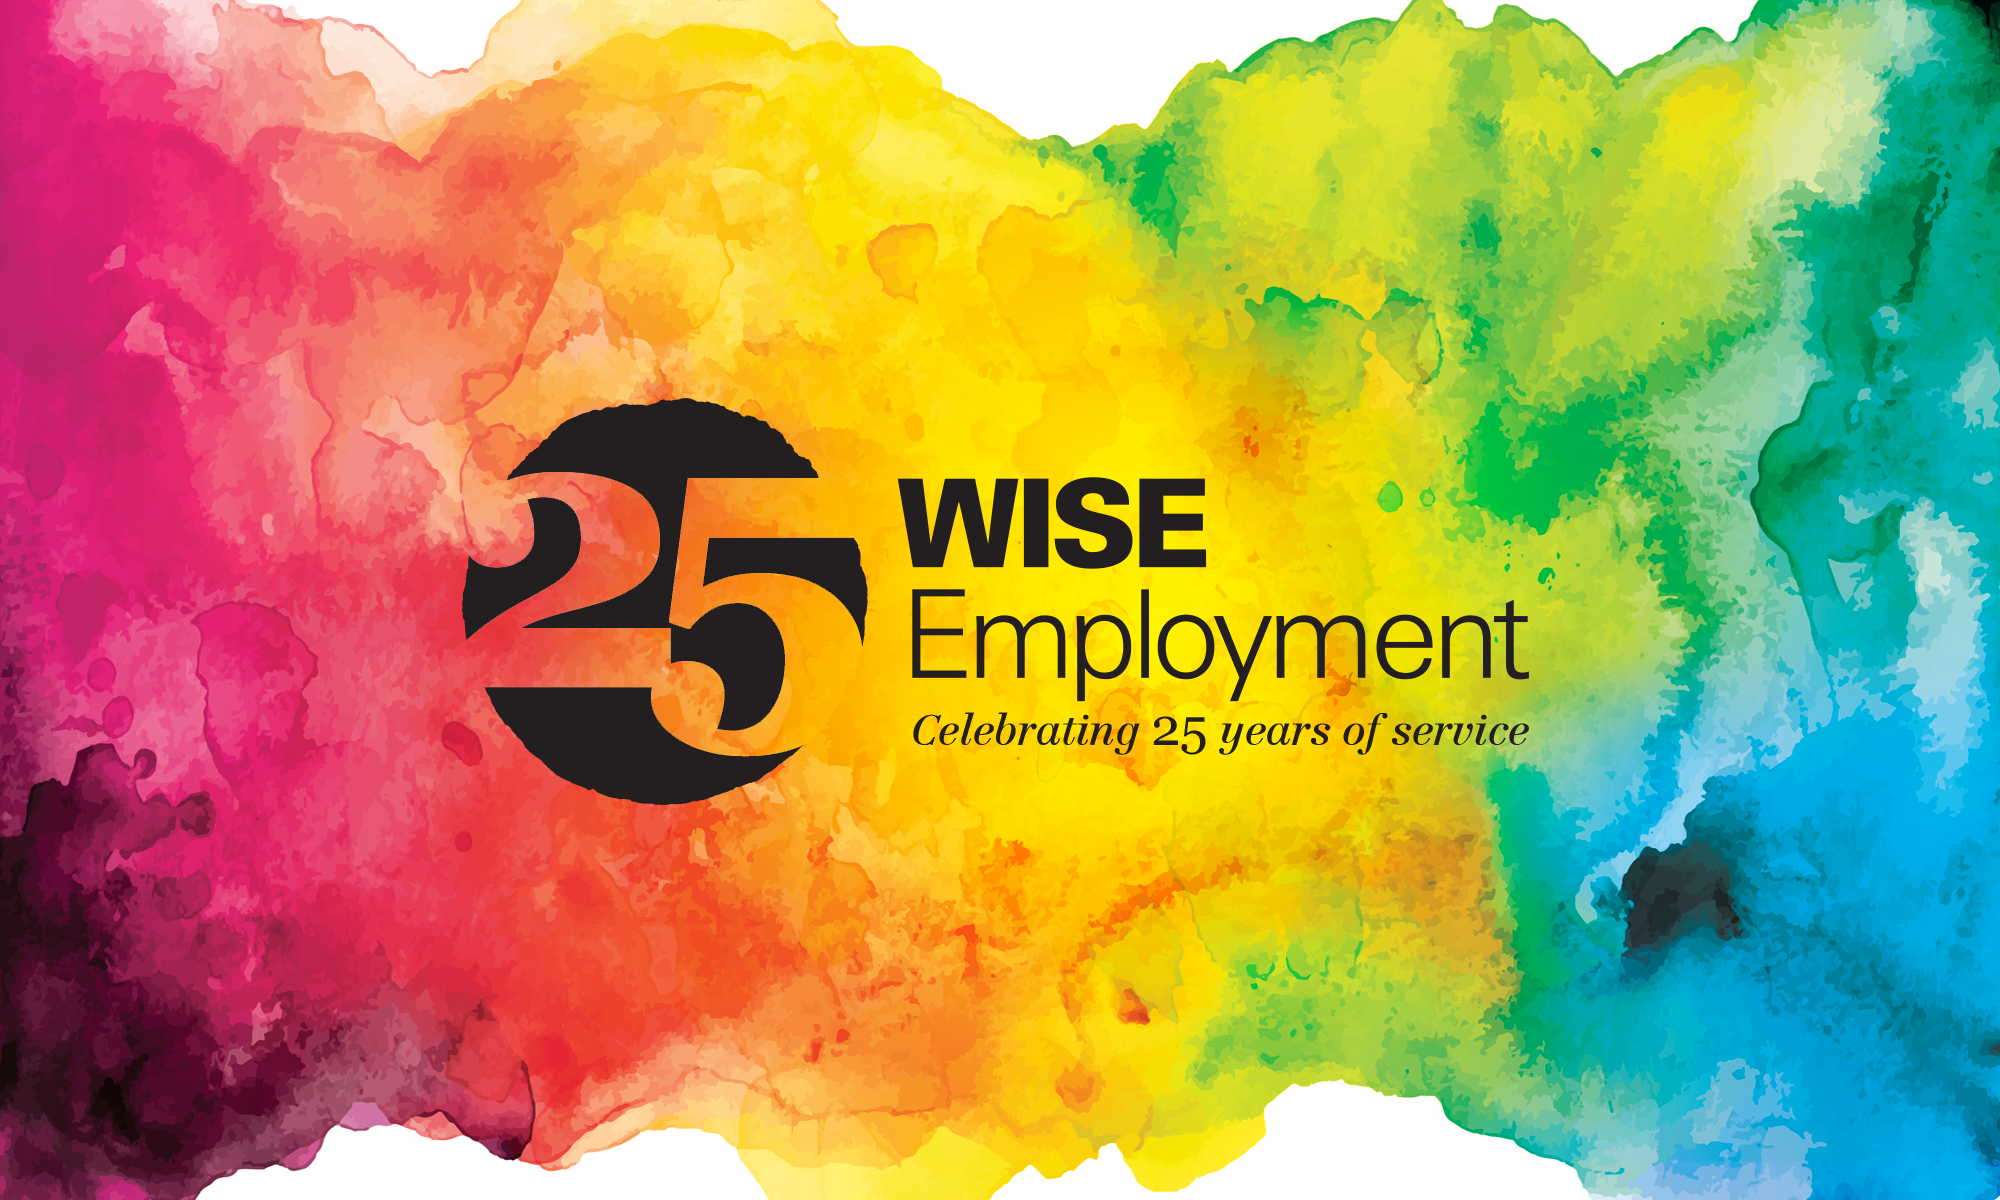 WISE Employment celebrates 25 years of service